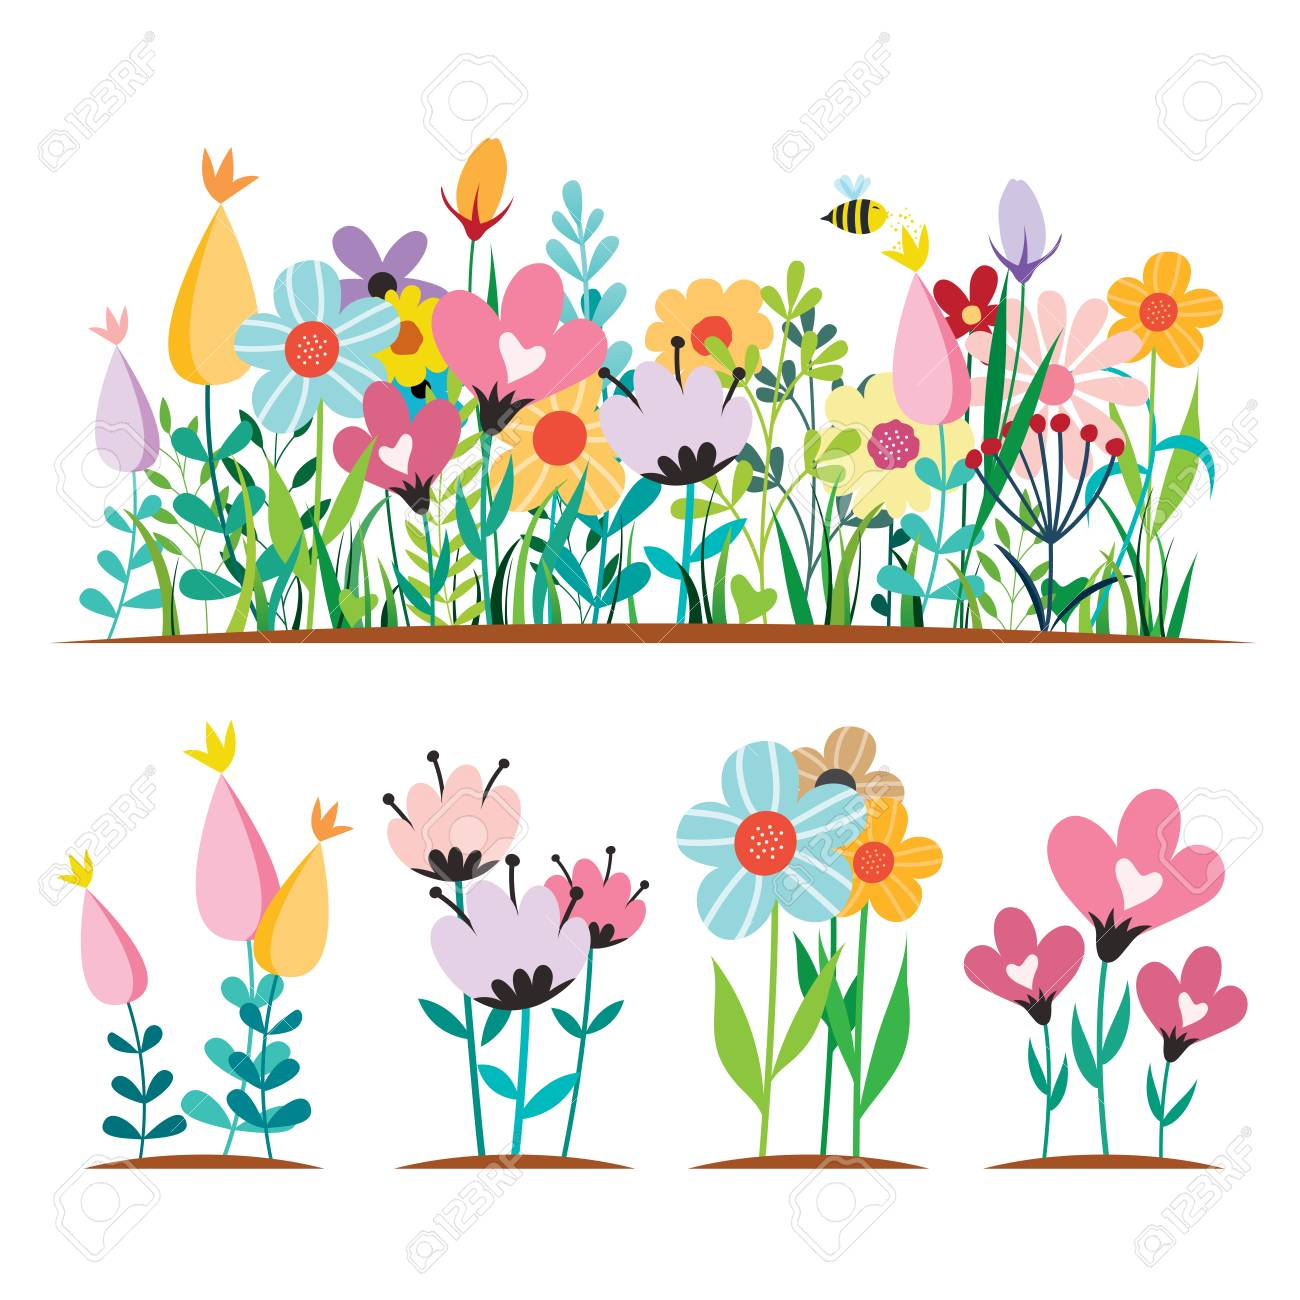 Spring Flowers Design Concepts Vector Illustrations Isolated Royalty Free Cliparts Vectors And Stock Illustration Image 115094235